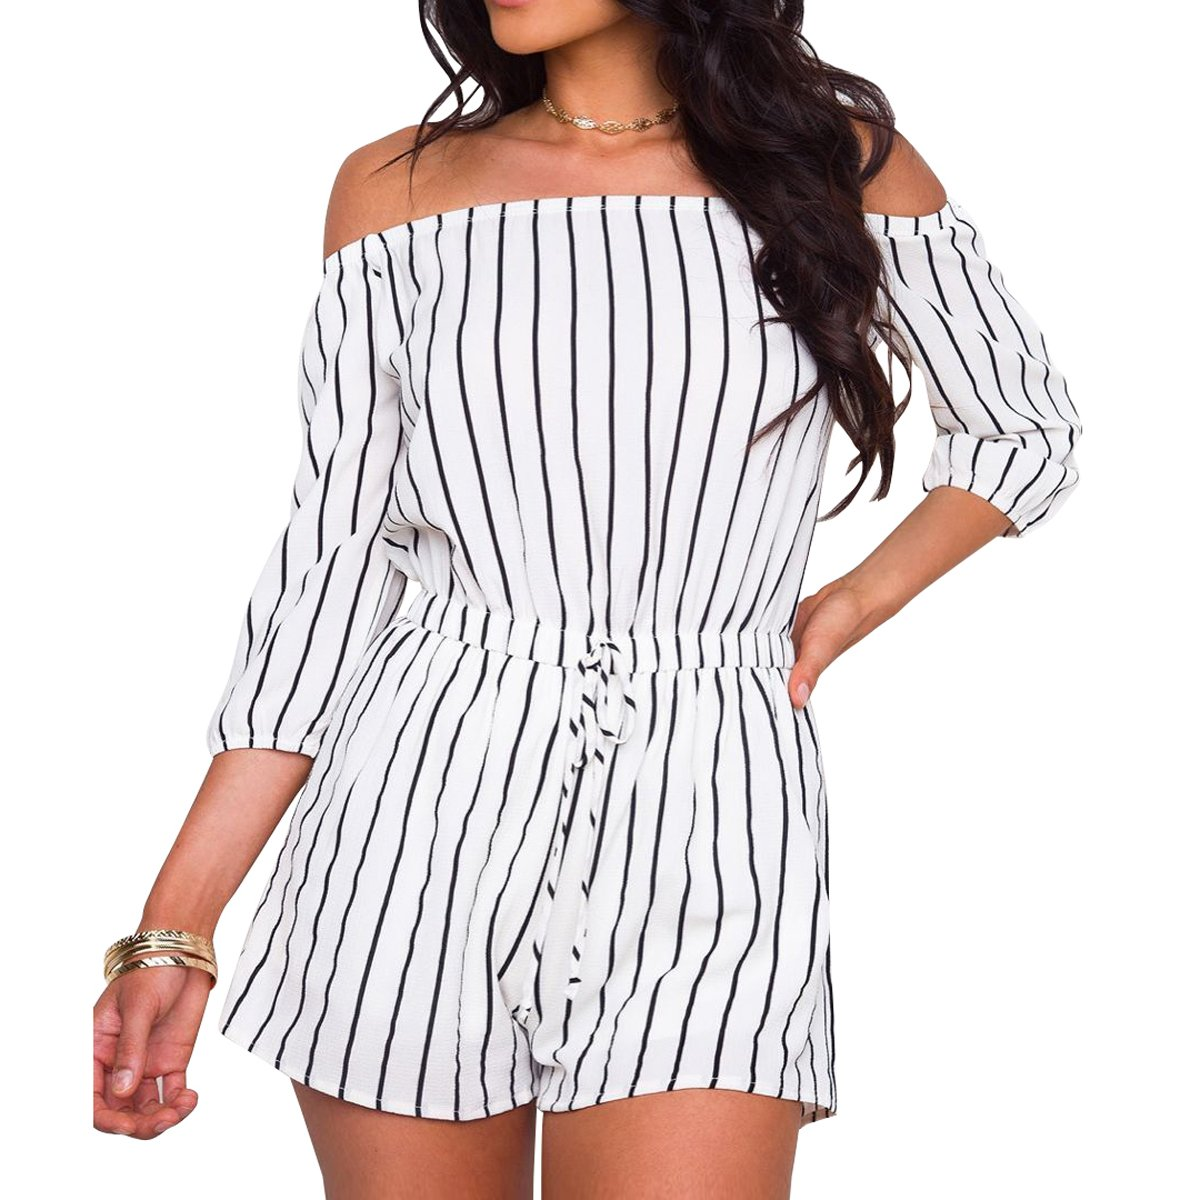 Evoky Women's Summer Striped Off Shoulder 3/4 Sleeves Romper Jumpsuit